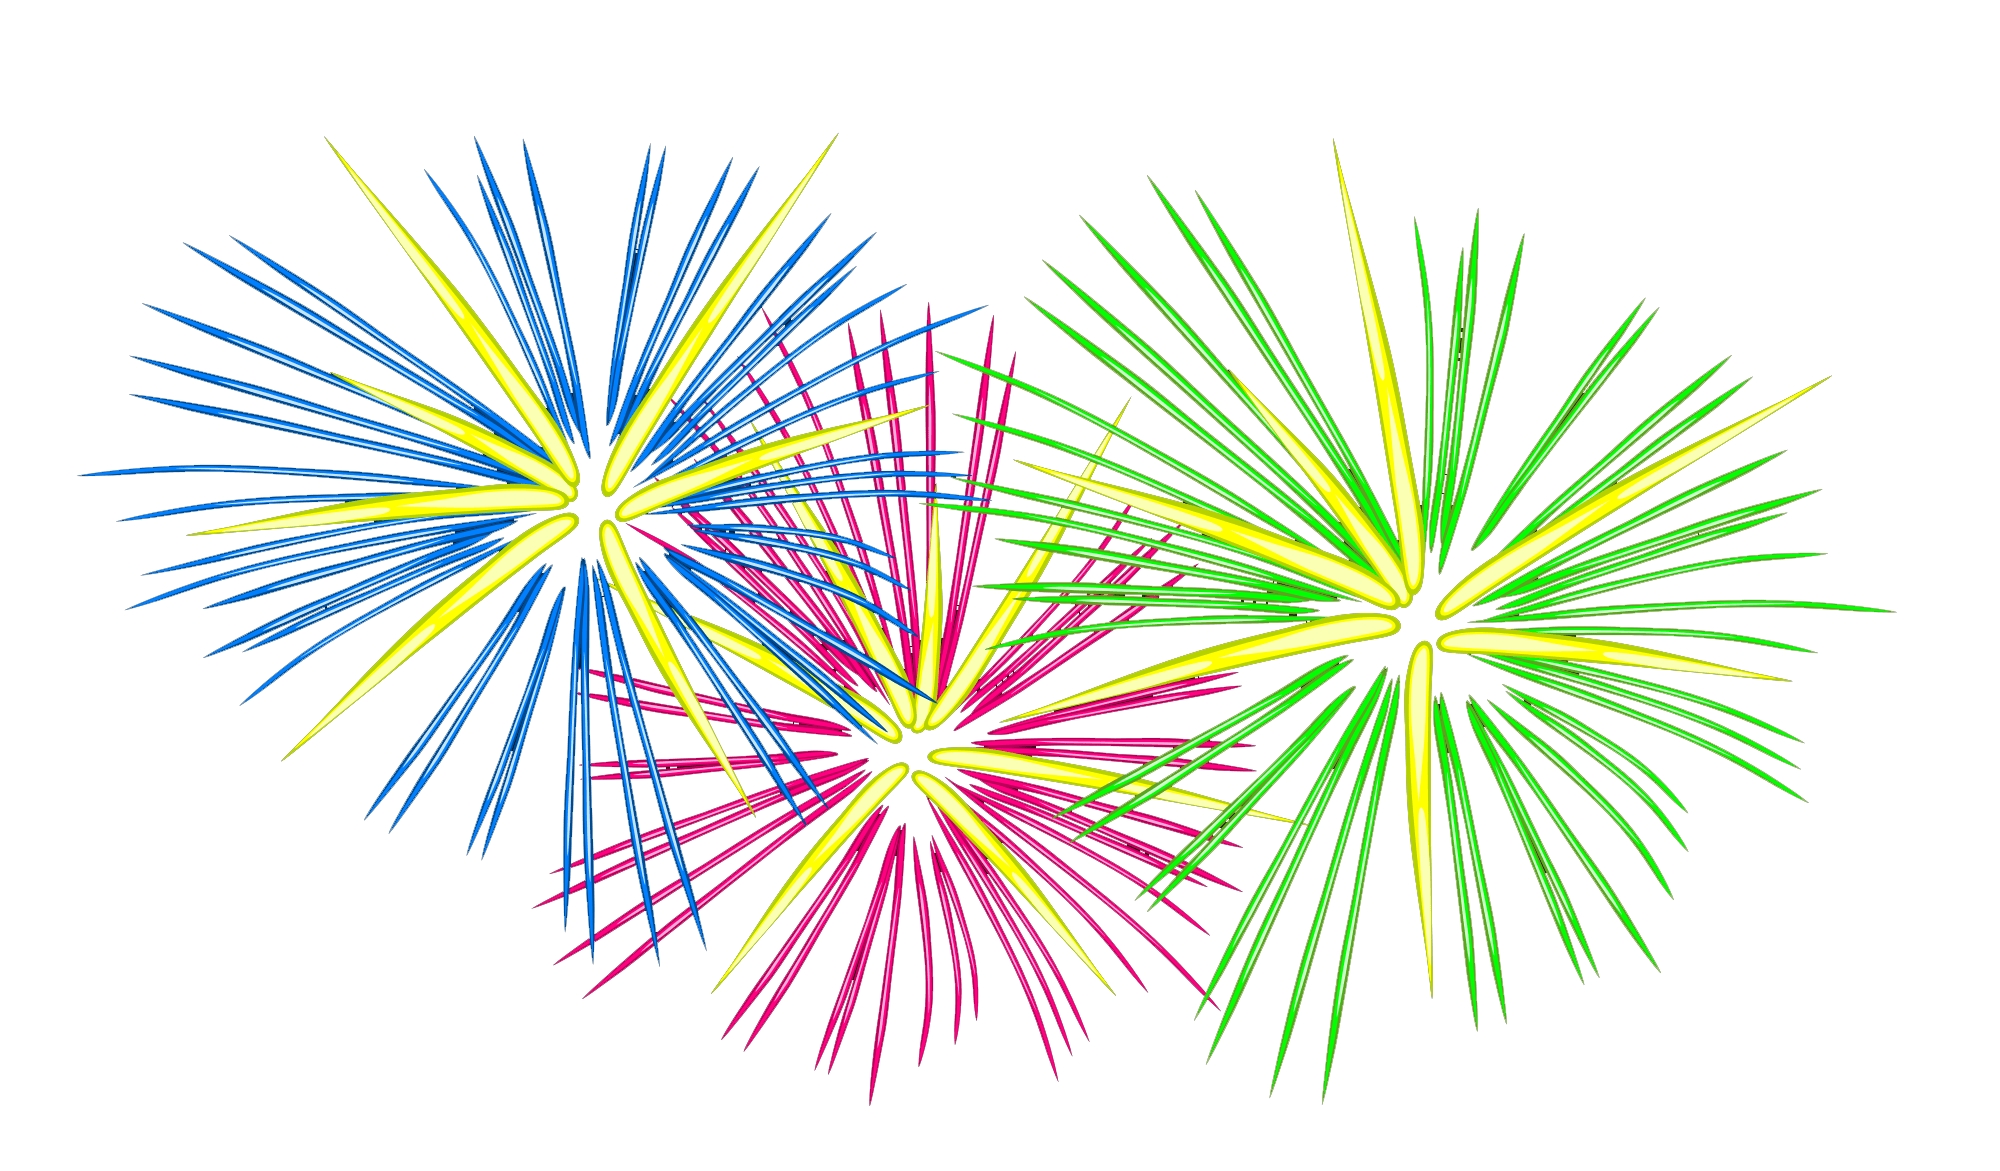 hight resolution of fireworks clip art fireworks animations clipart